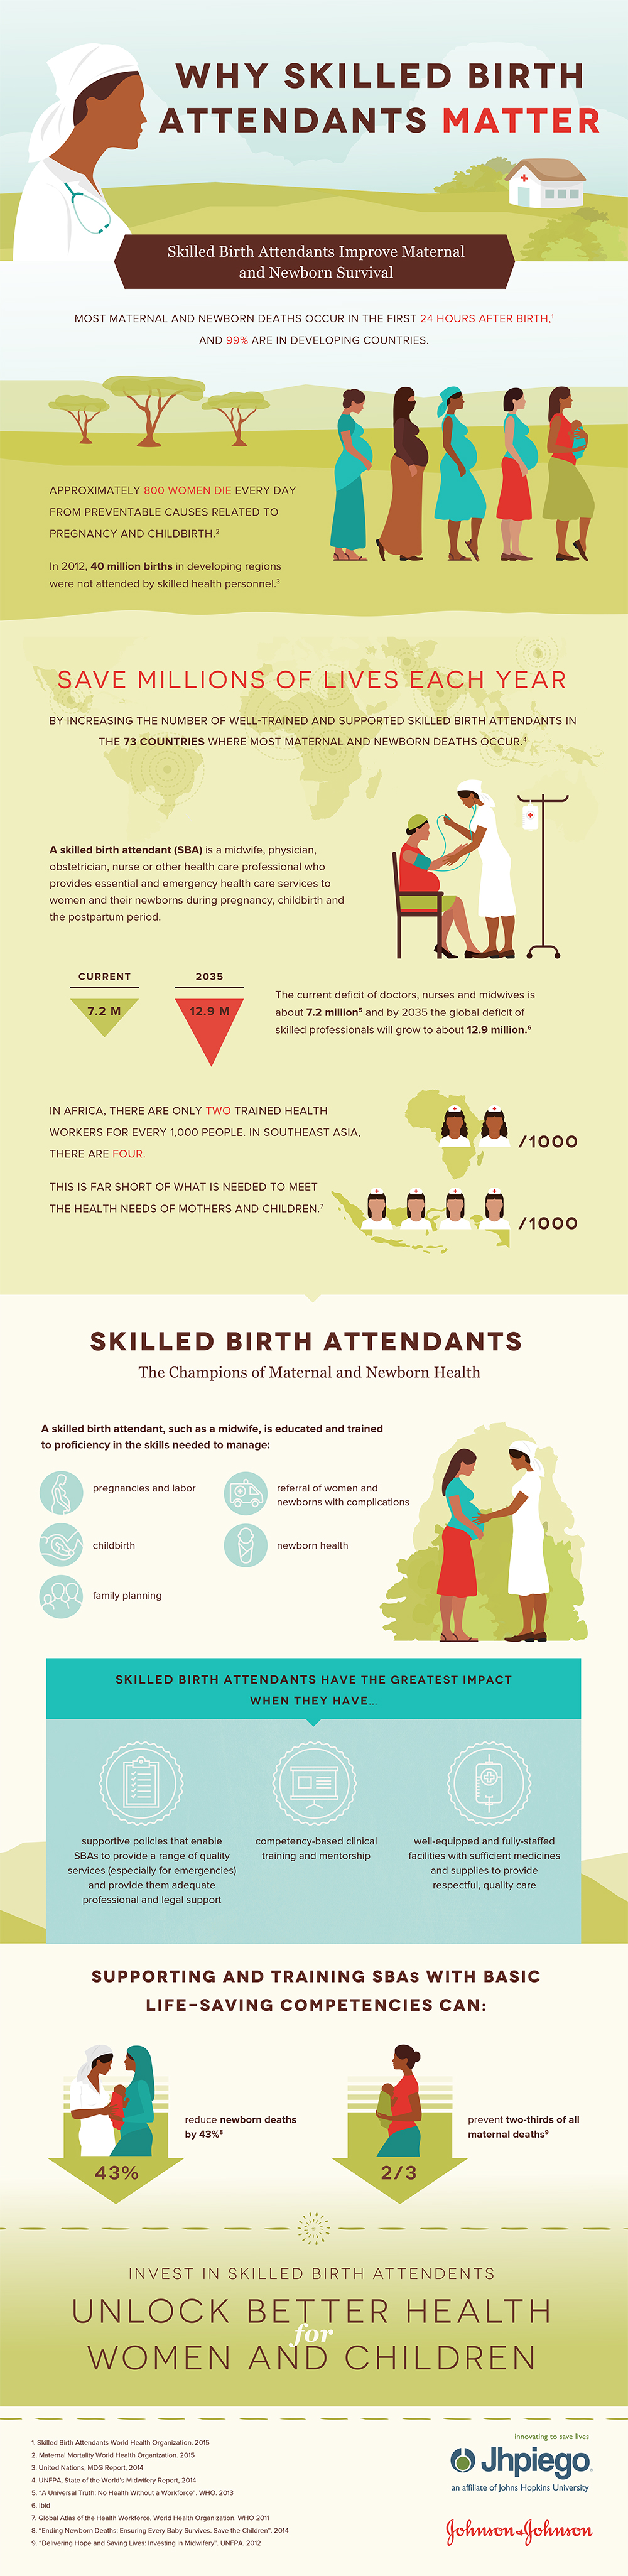 Skilled-Birth-Attendants-Infographic